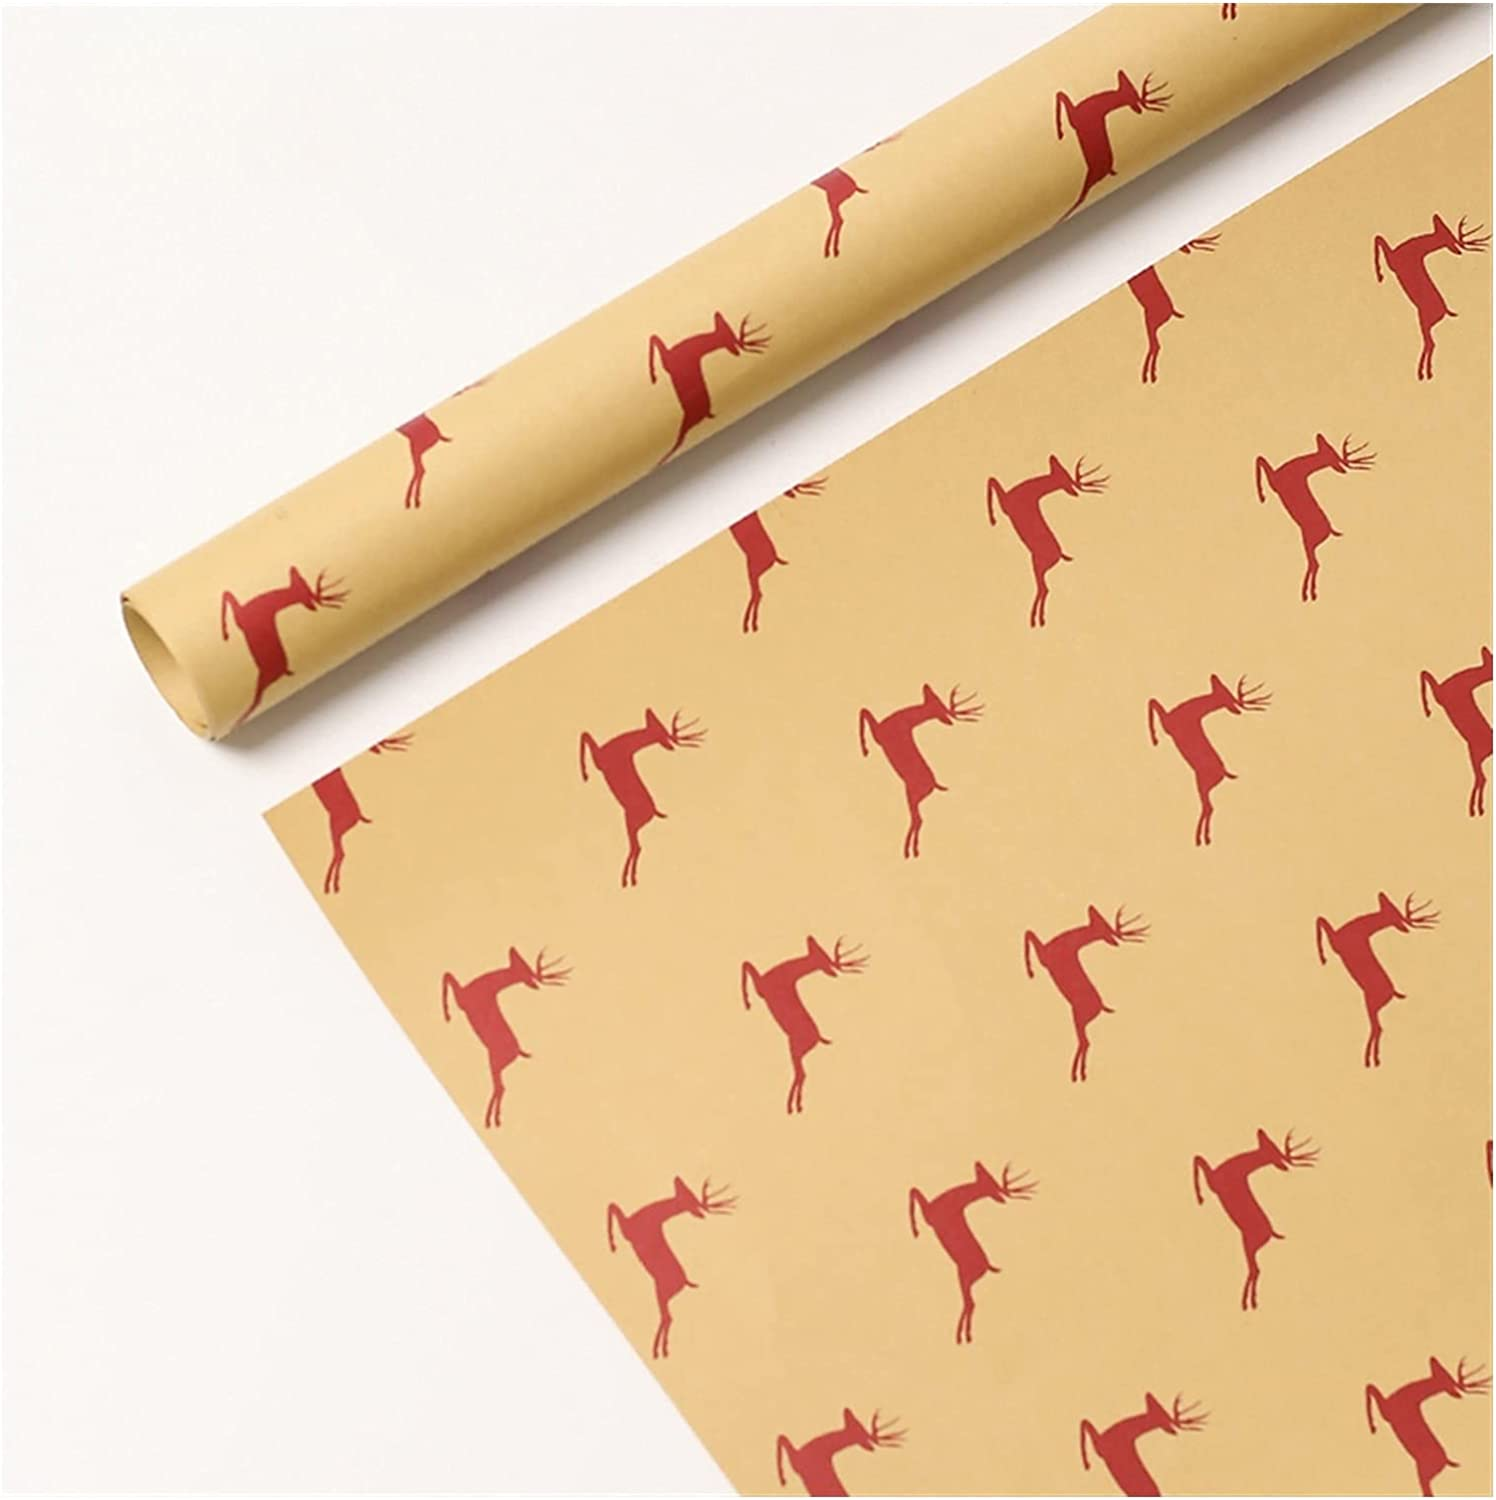 Max 56% OFF HSLINU 10 Sheets Kraft Wrapping Christ 120gsm High quality new Paper Tissue